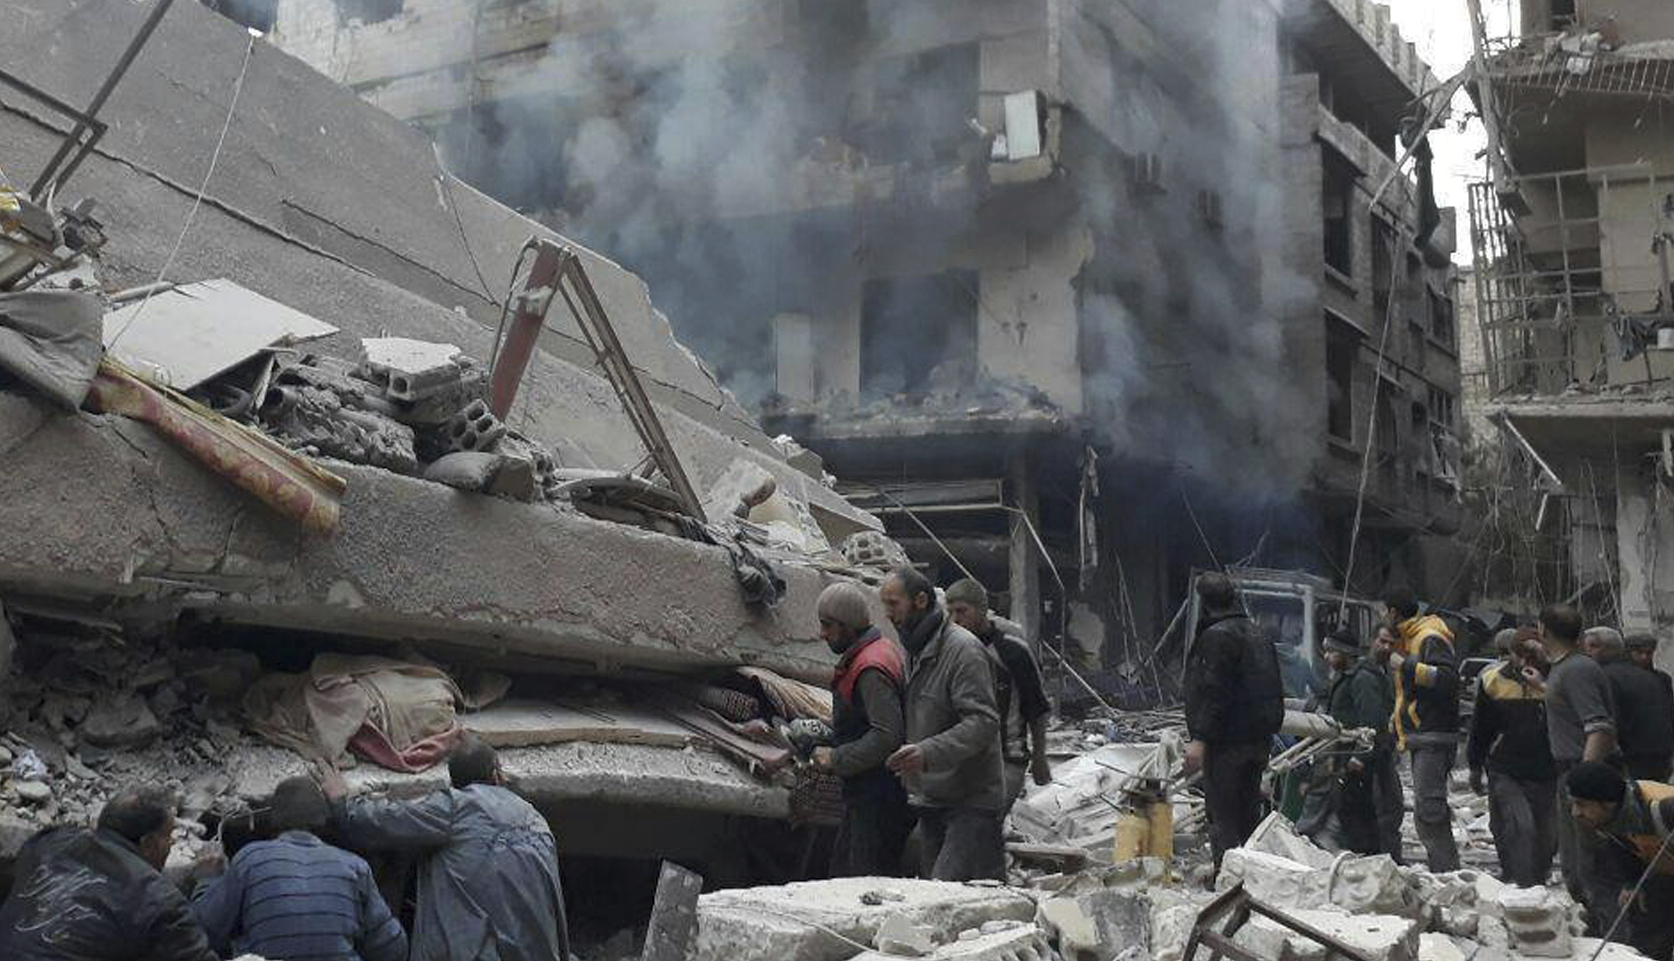 Syrians search for victims under the rubble of a destroyed building that attacked by Syrian government forces airstrikes in Ghouta. Photograph: AP